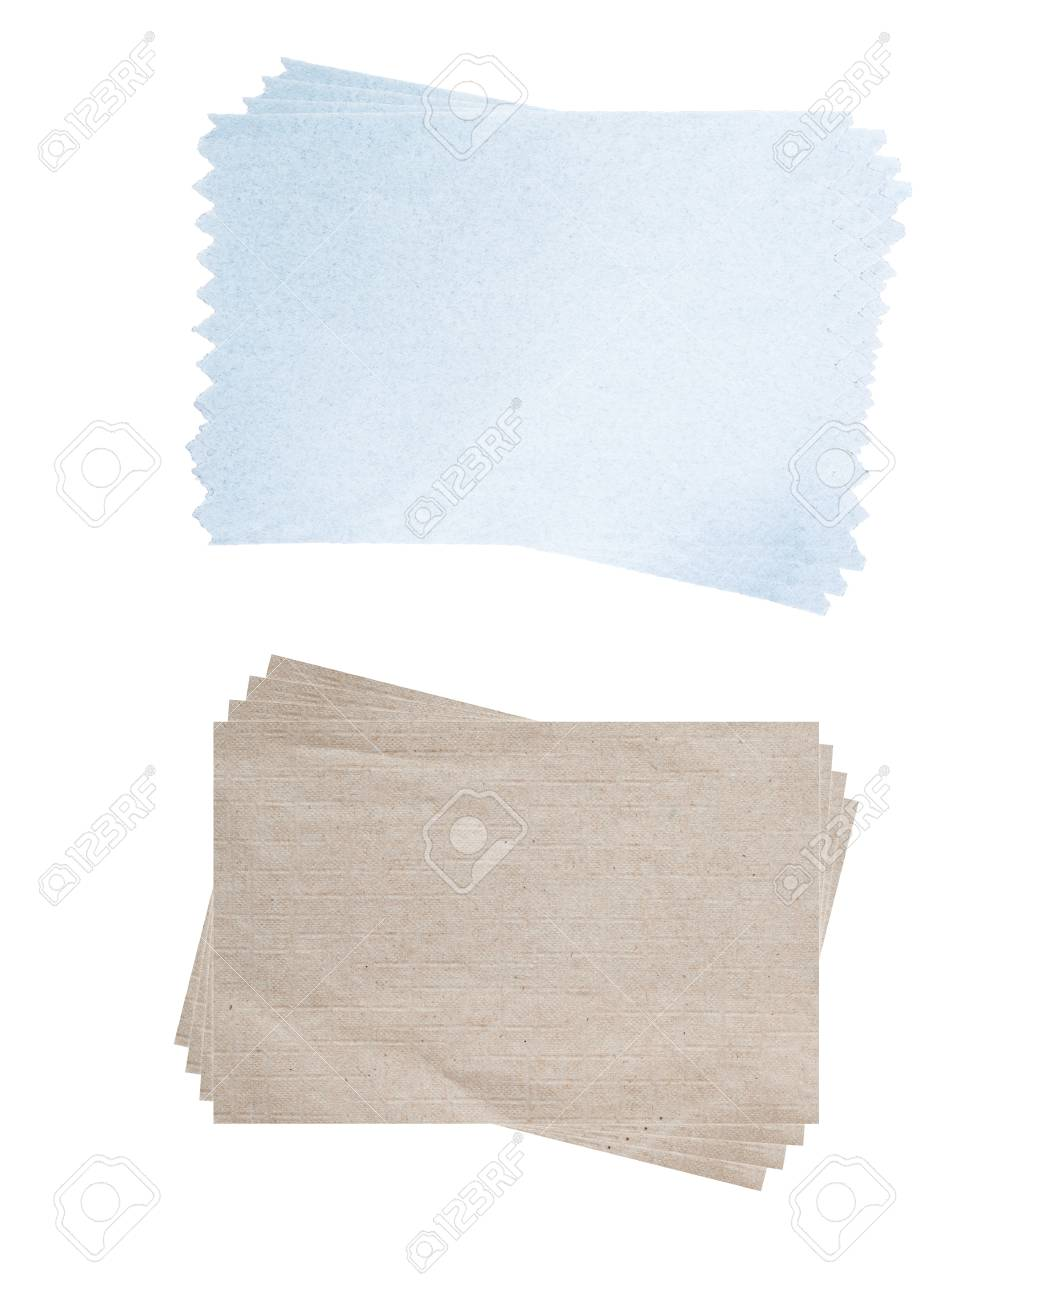 The texture of recycled paper for background Stock Photo - 13727045